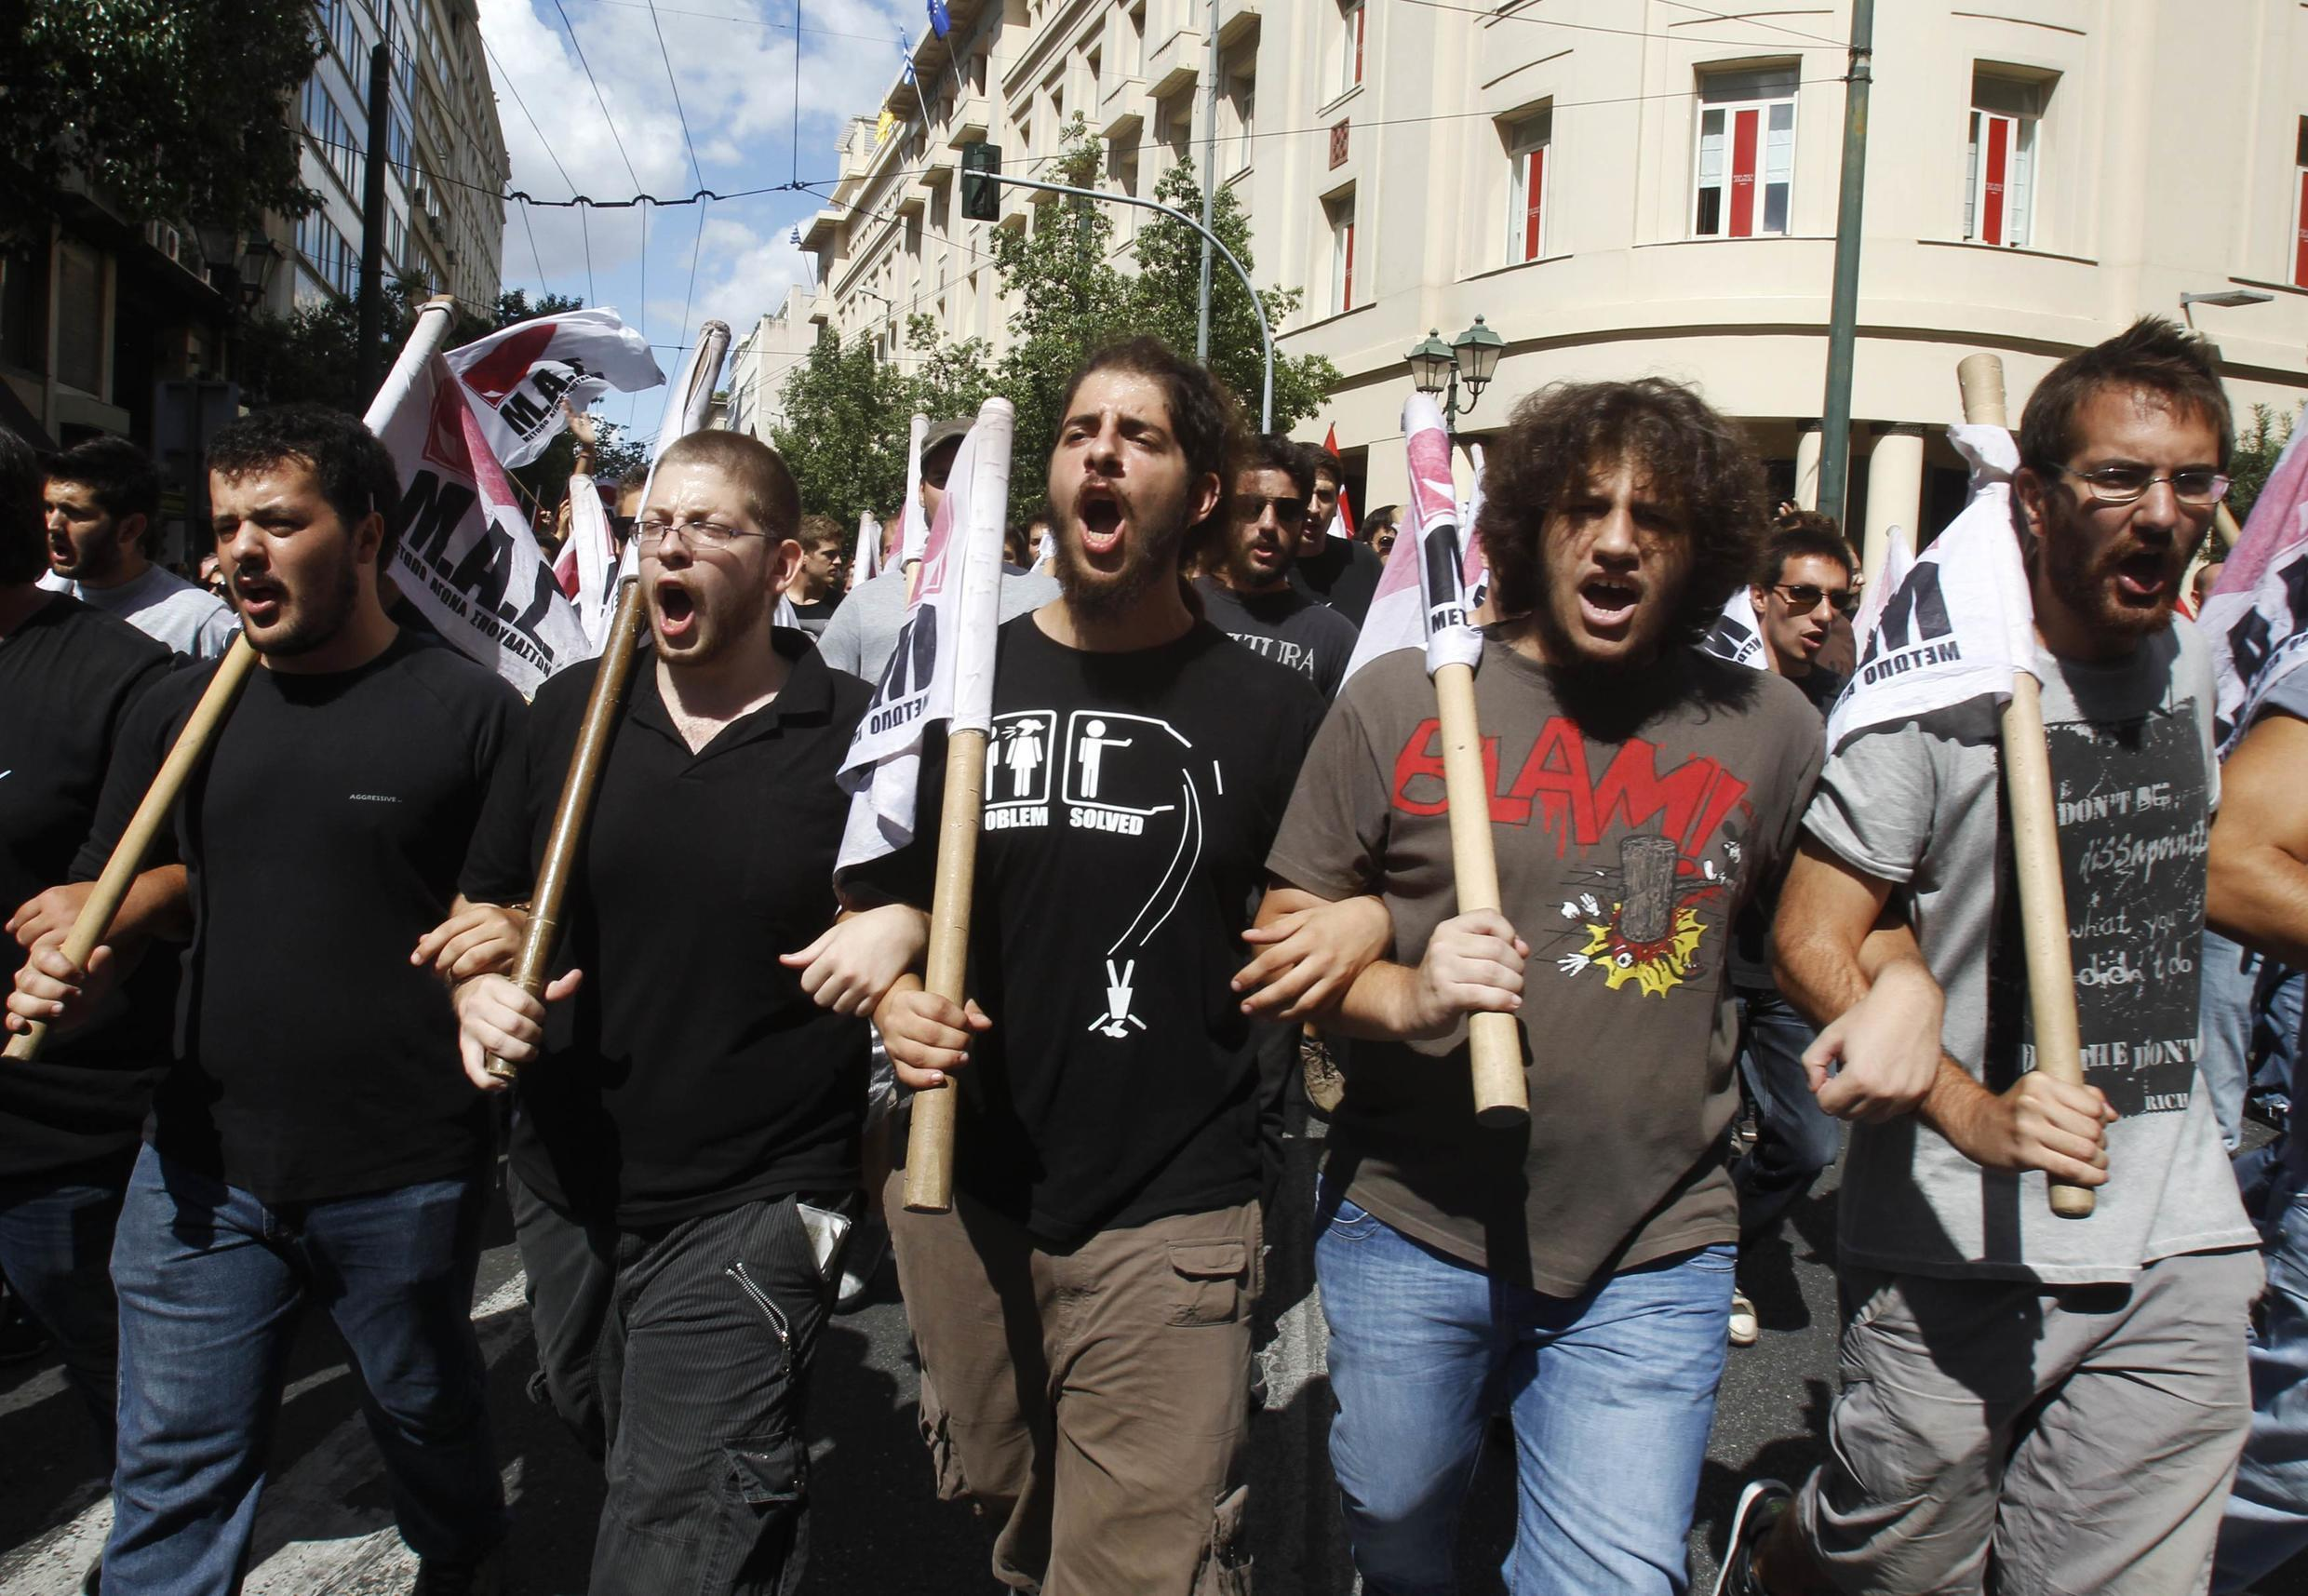 Greeks react with anger and disbelief at fresh cutbacks